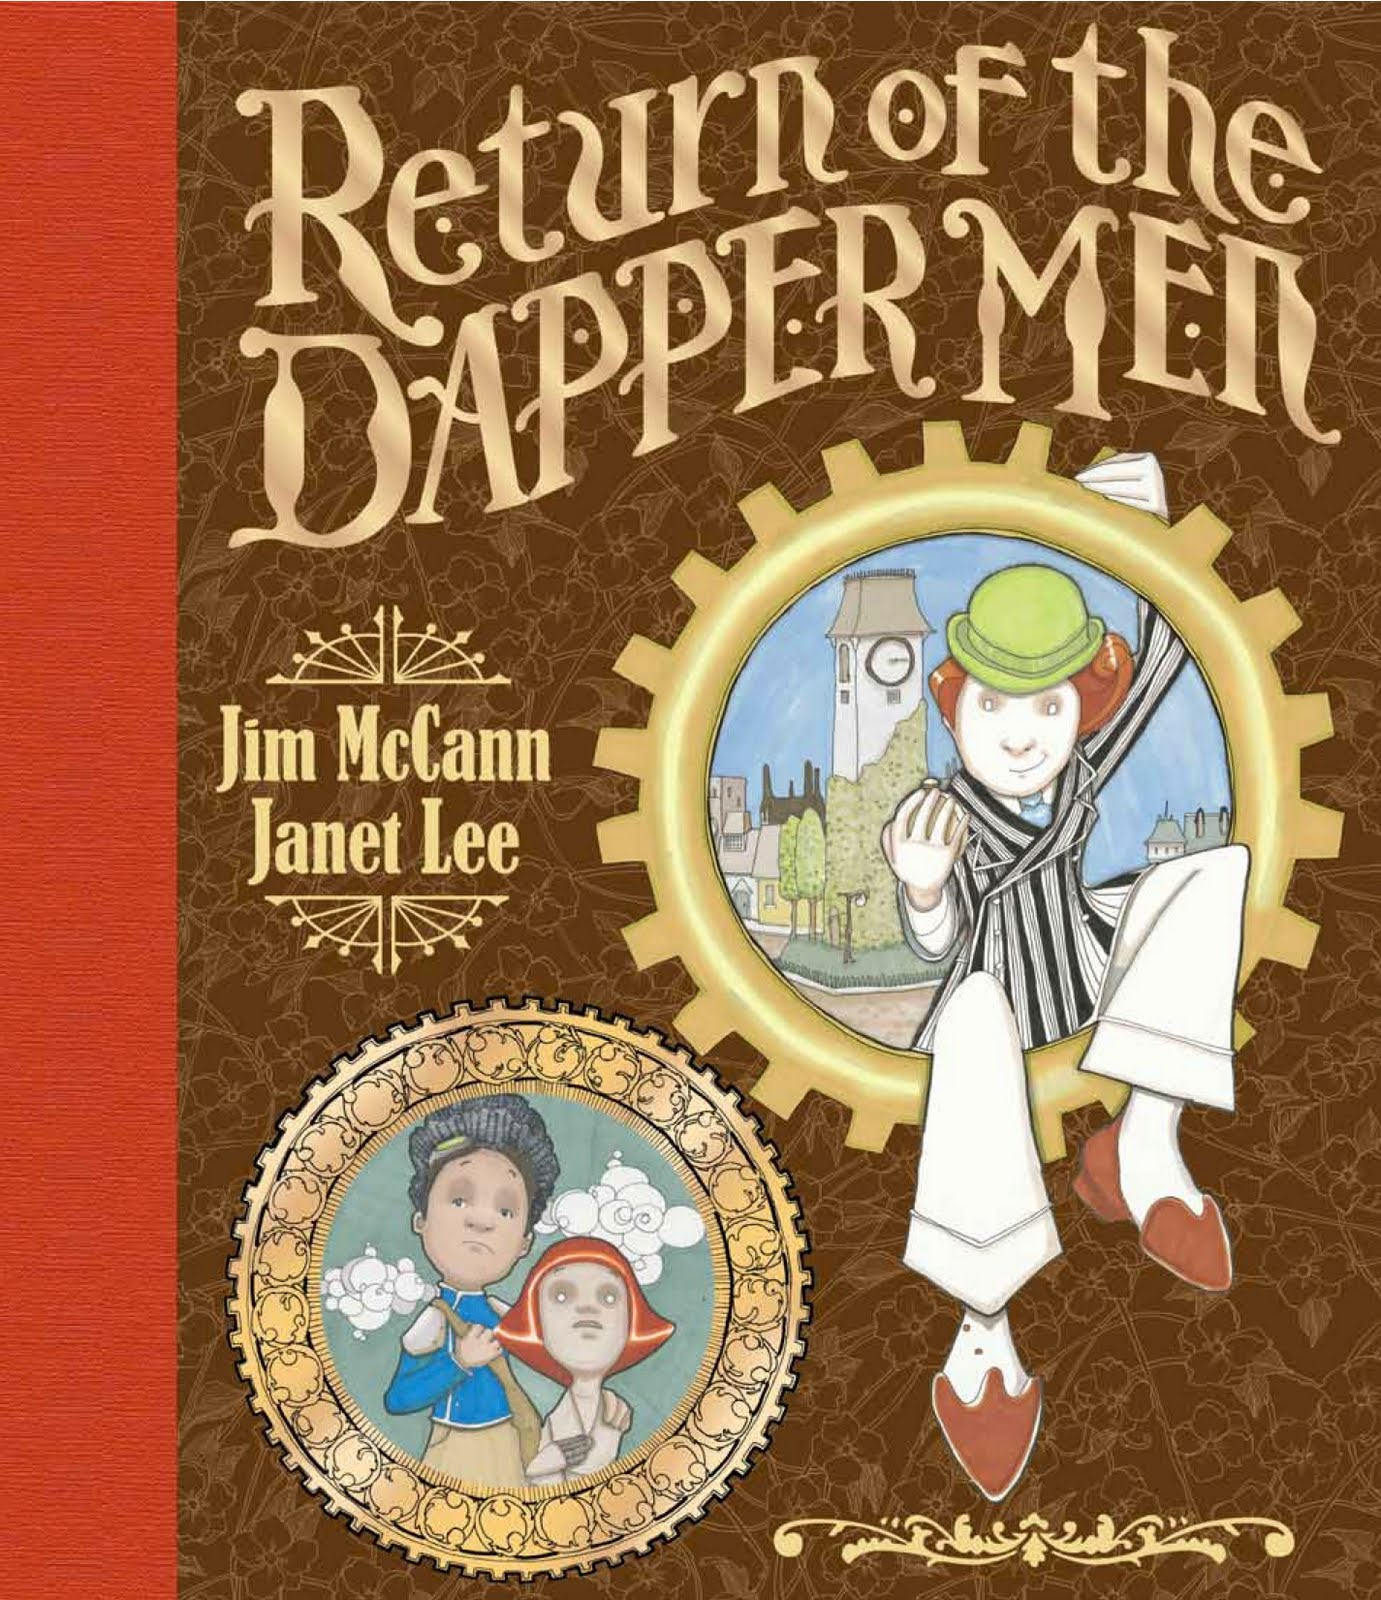 vvb32 reads: Return of the Dapper Men by Jim McCann